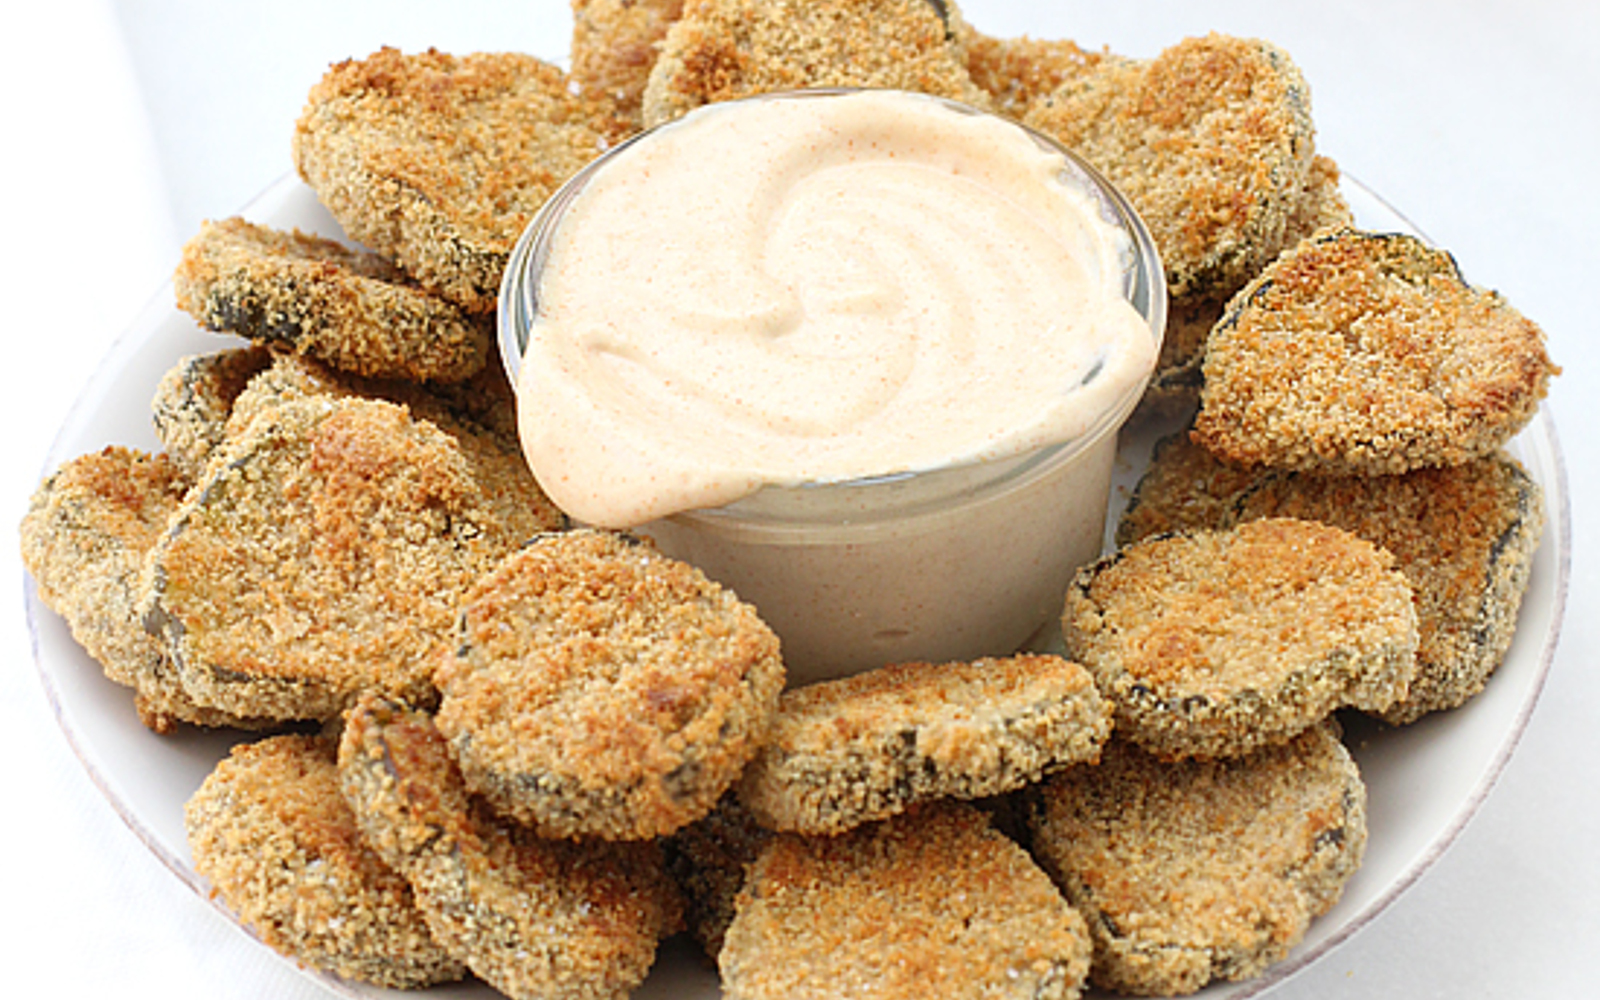 Oven-Fried Pickles With Garlic Paprika Aiol